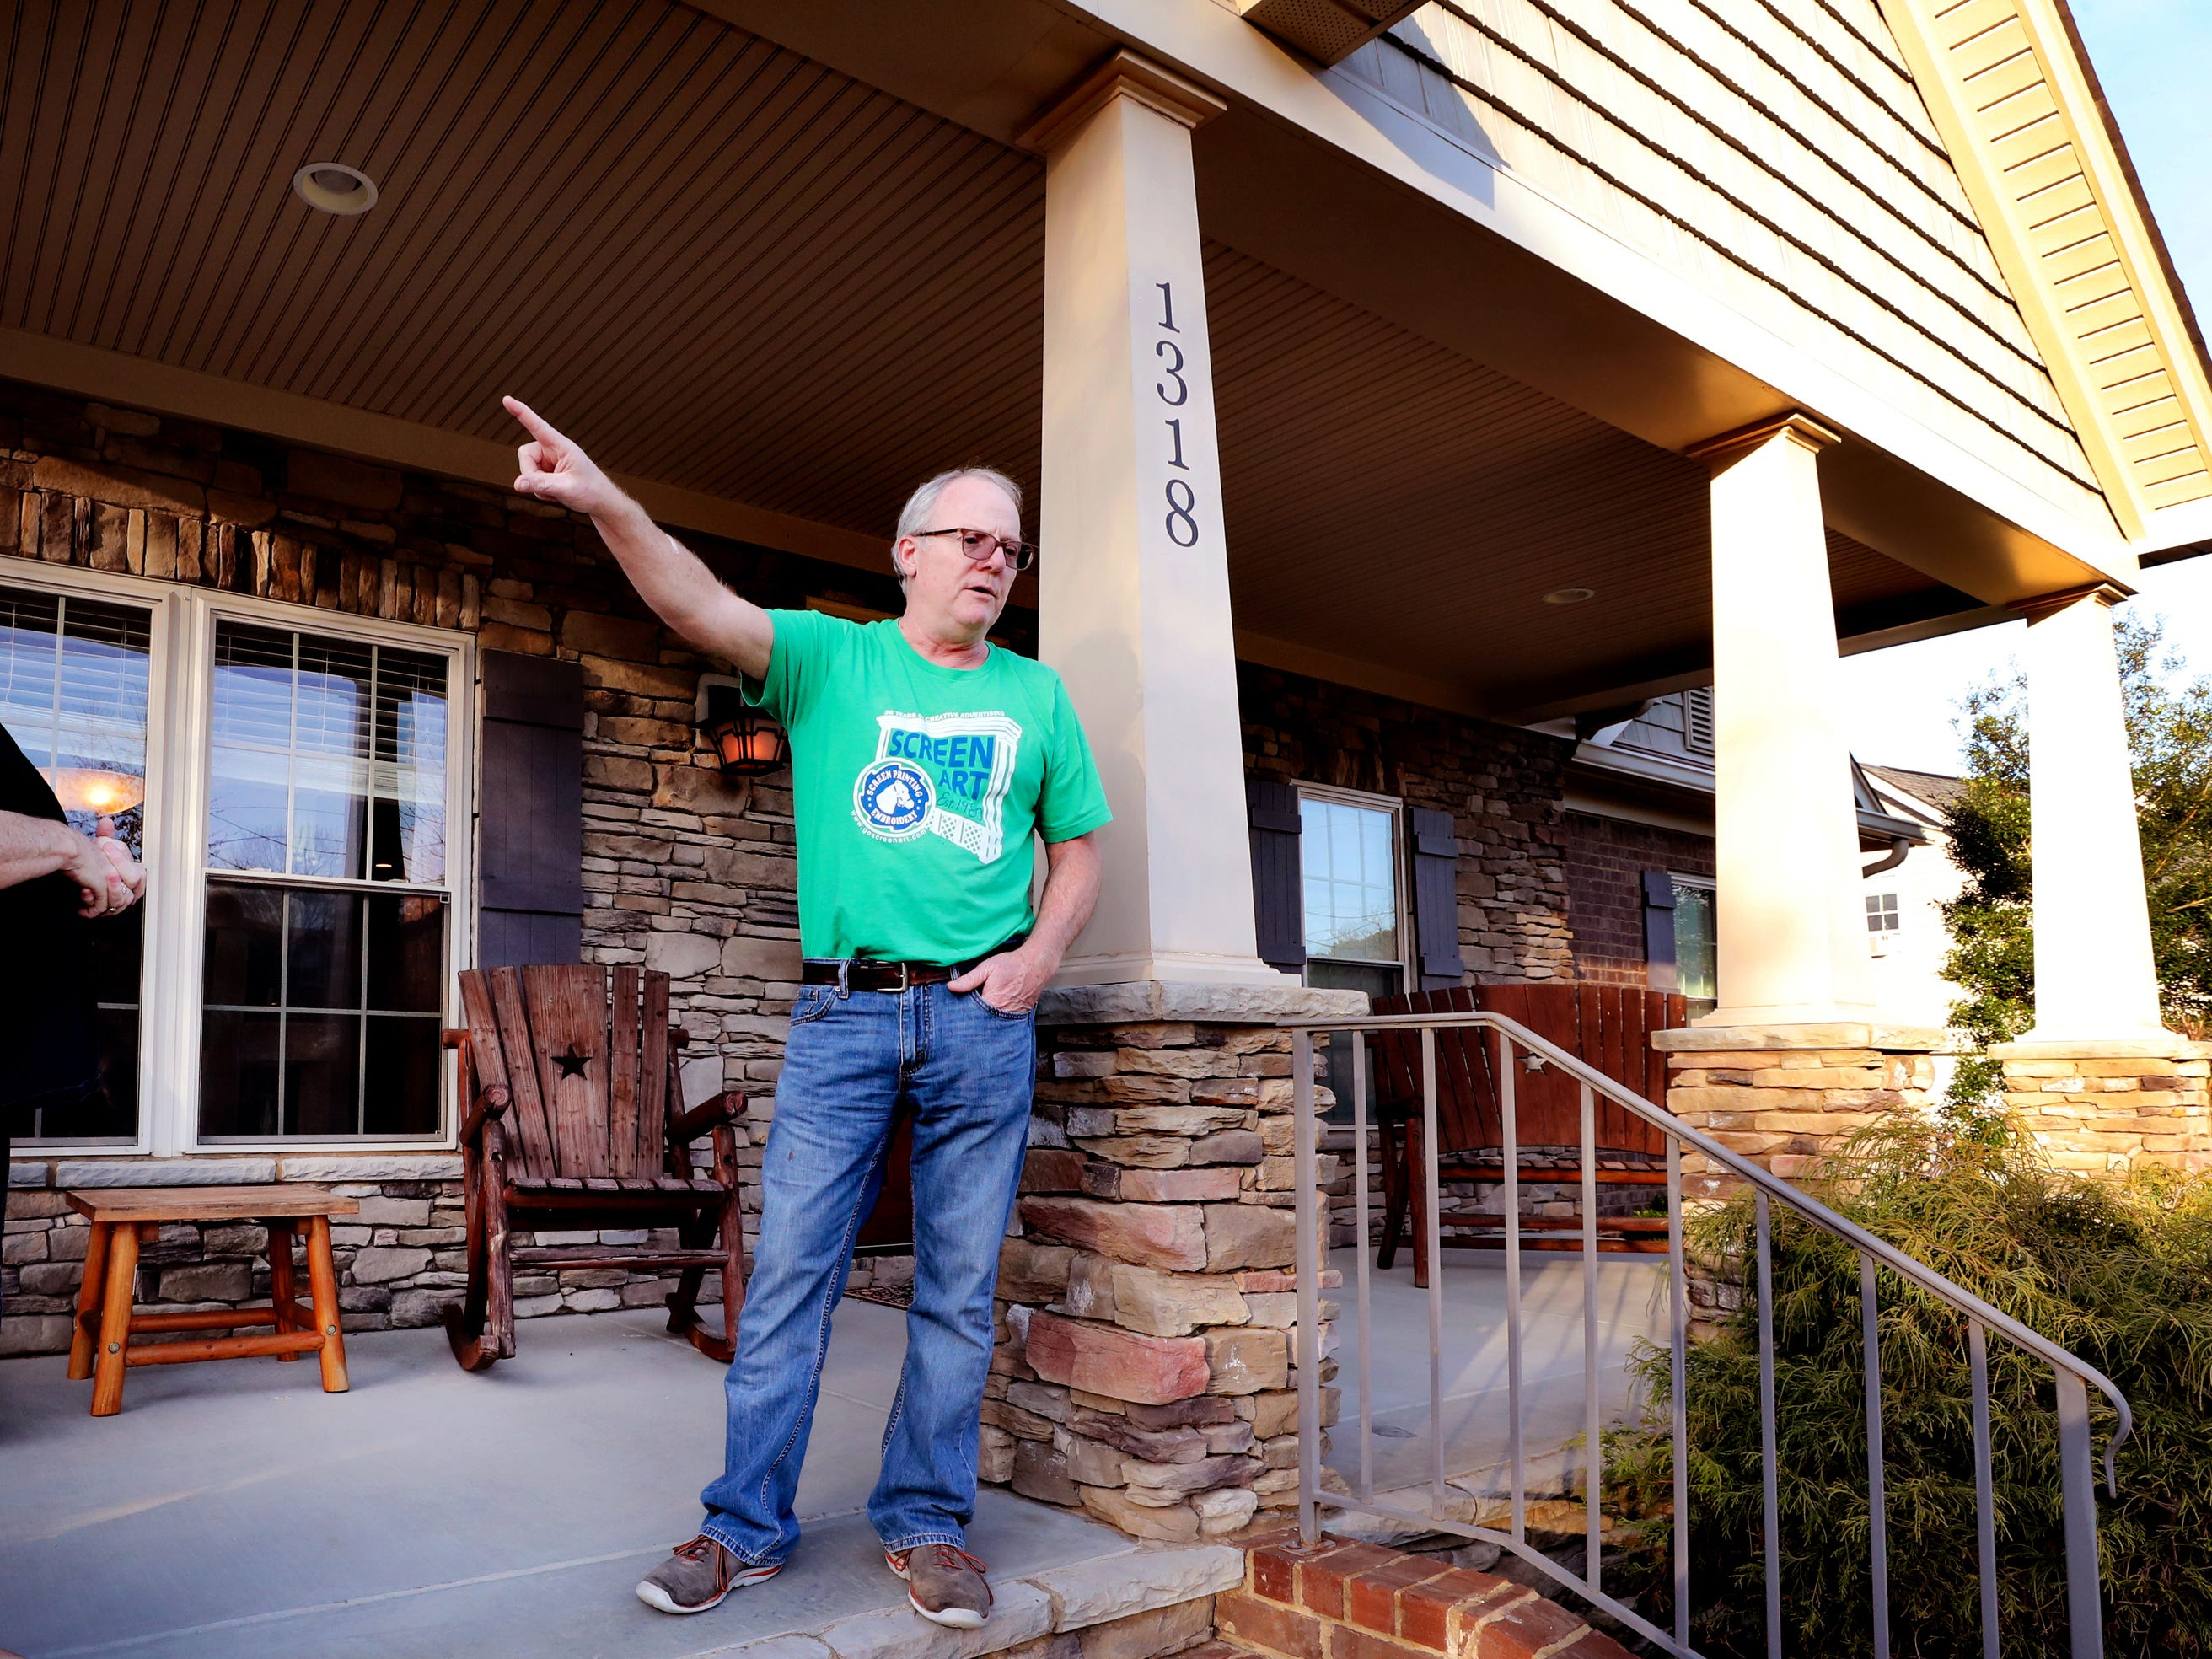 Mike Bickford stands on the porch of his Murfreesboro home, Wednesday March 27, 2019, and points to the direction that the Good Friday tornado came that destroyed his home ten years ago in 2009.